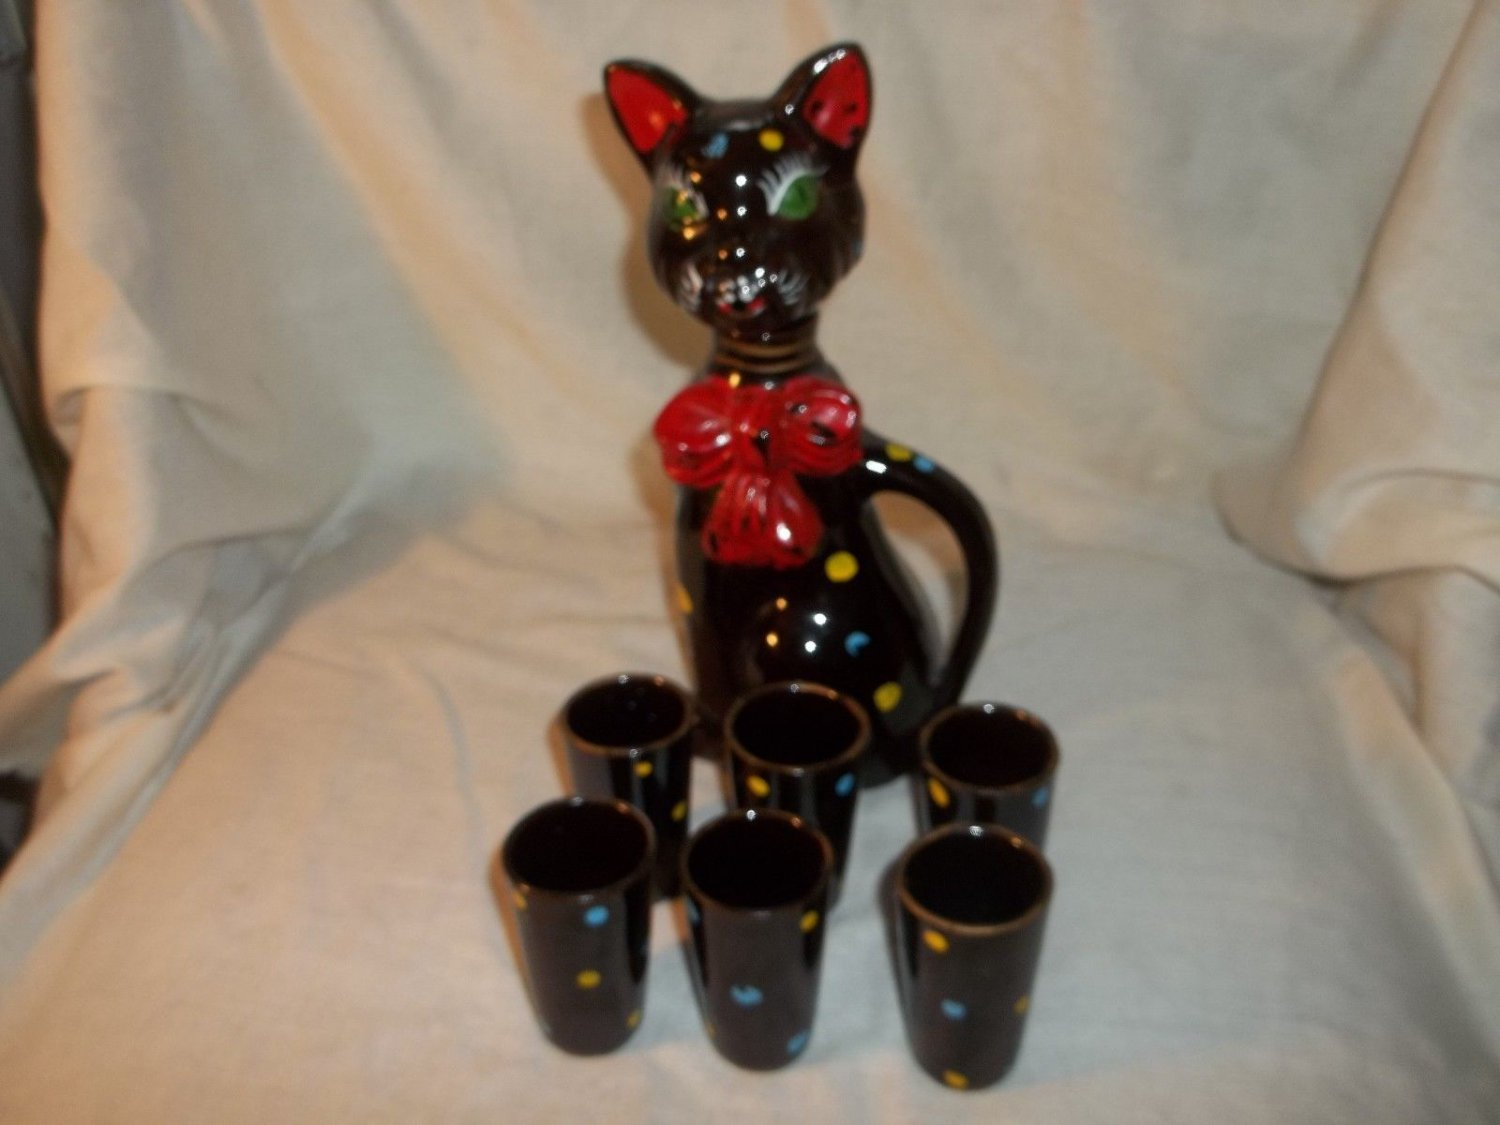 Vintage Decanter Bar Set, Cat and Six (6) Shot Glasses, Not Perfect, Very Cute!